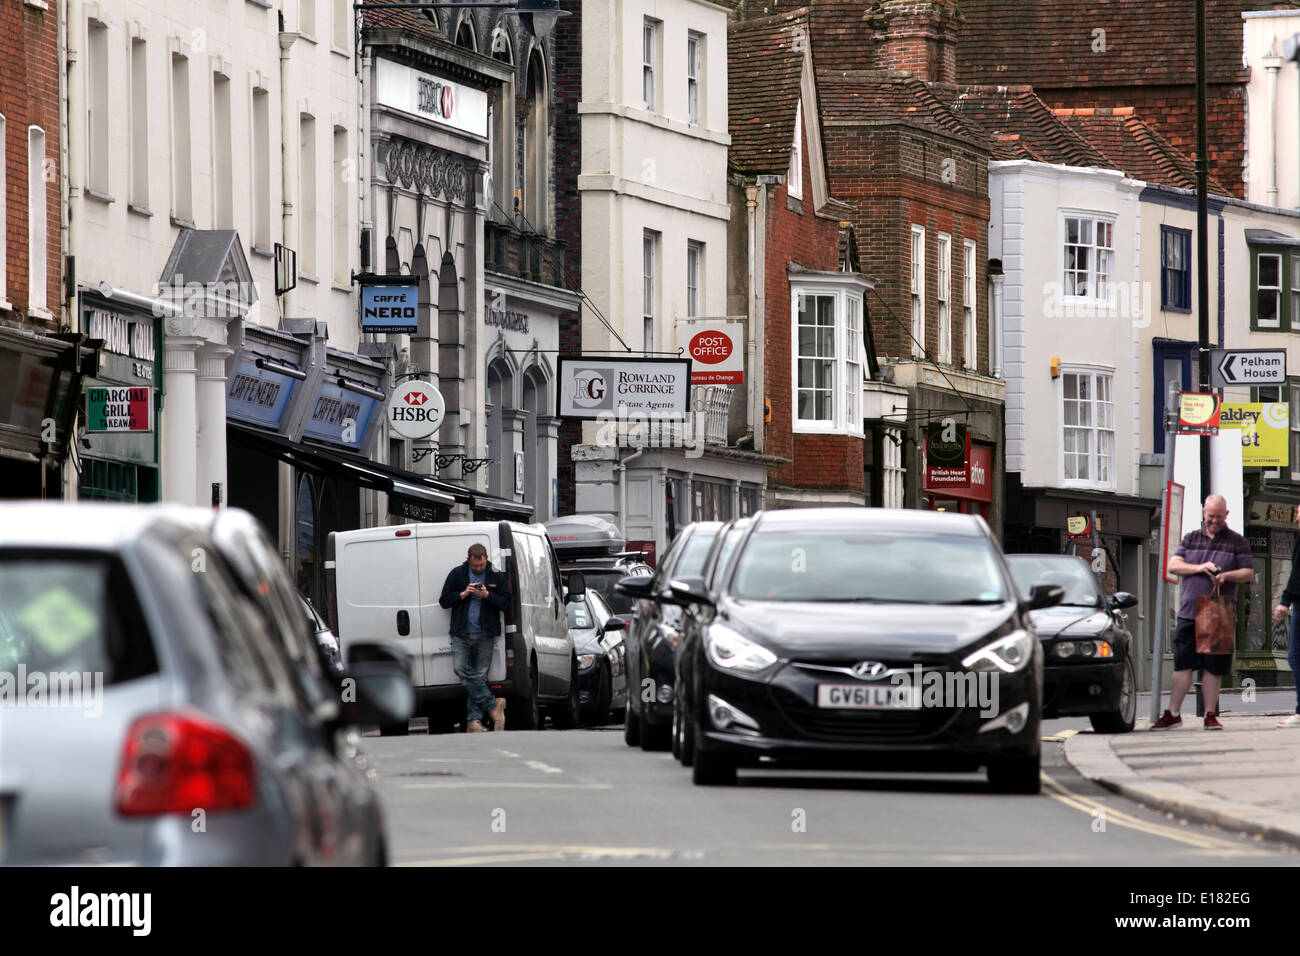 Traffic congestion in Lewes High Street. - Stock Image